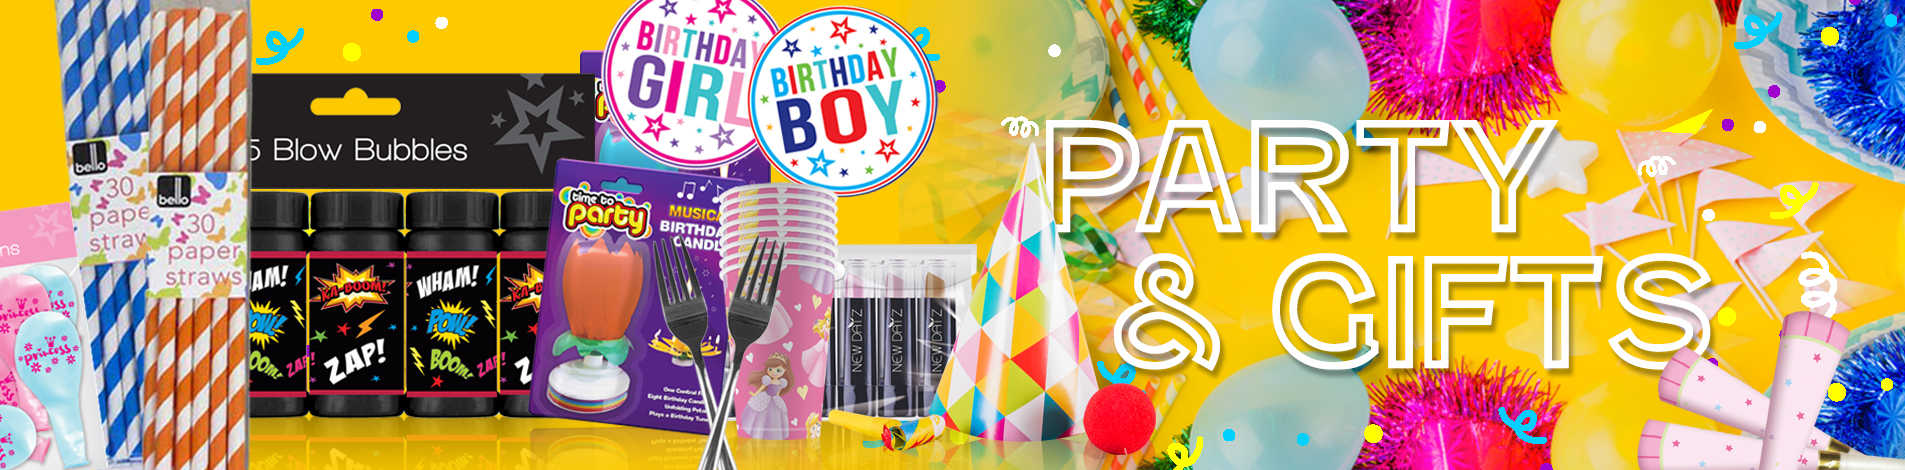 party-and-gifts-banner